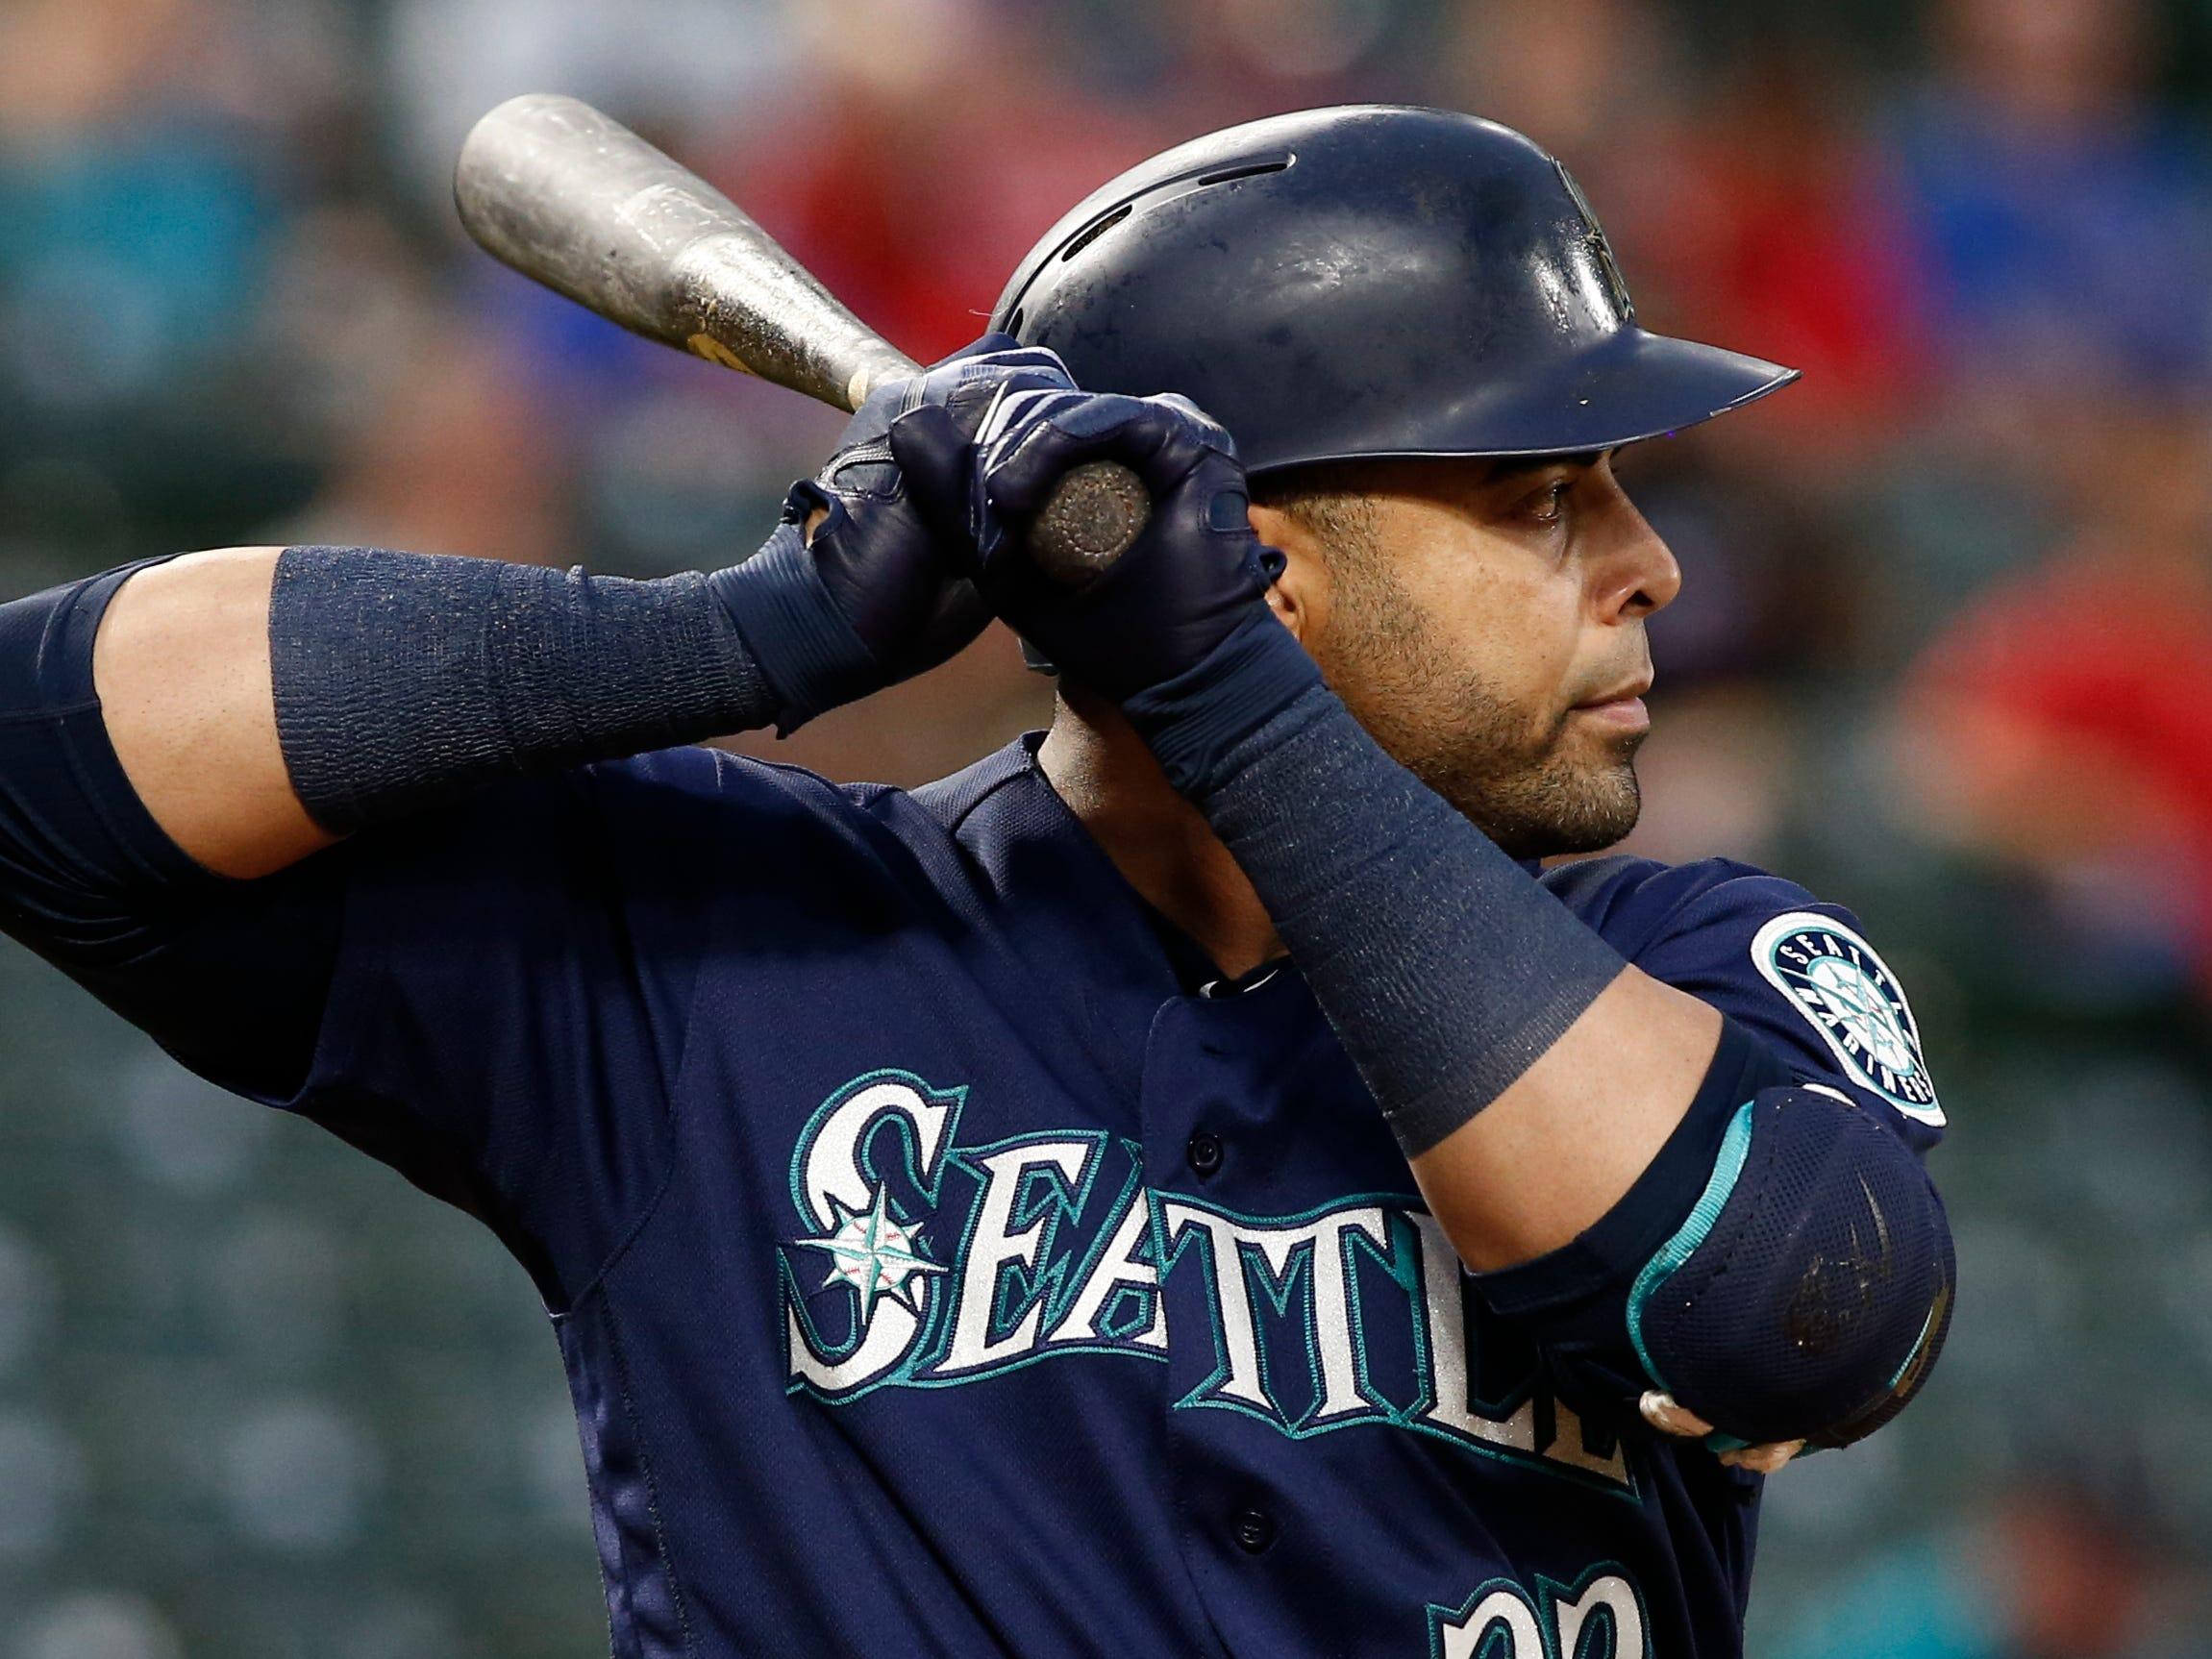 24. Nelson Cruz, DH, 38: The Mariners took a chance on him with a four-year, $57 million deal, but he earned pretty much every penny and should be poised for one more big payday. Prediction: Twins, two years, $32 million